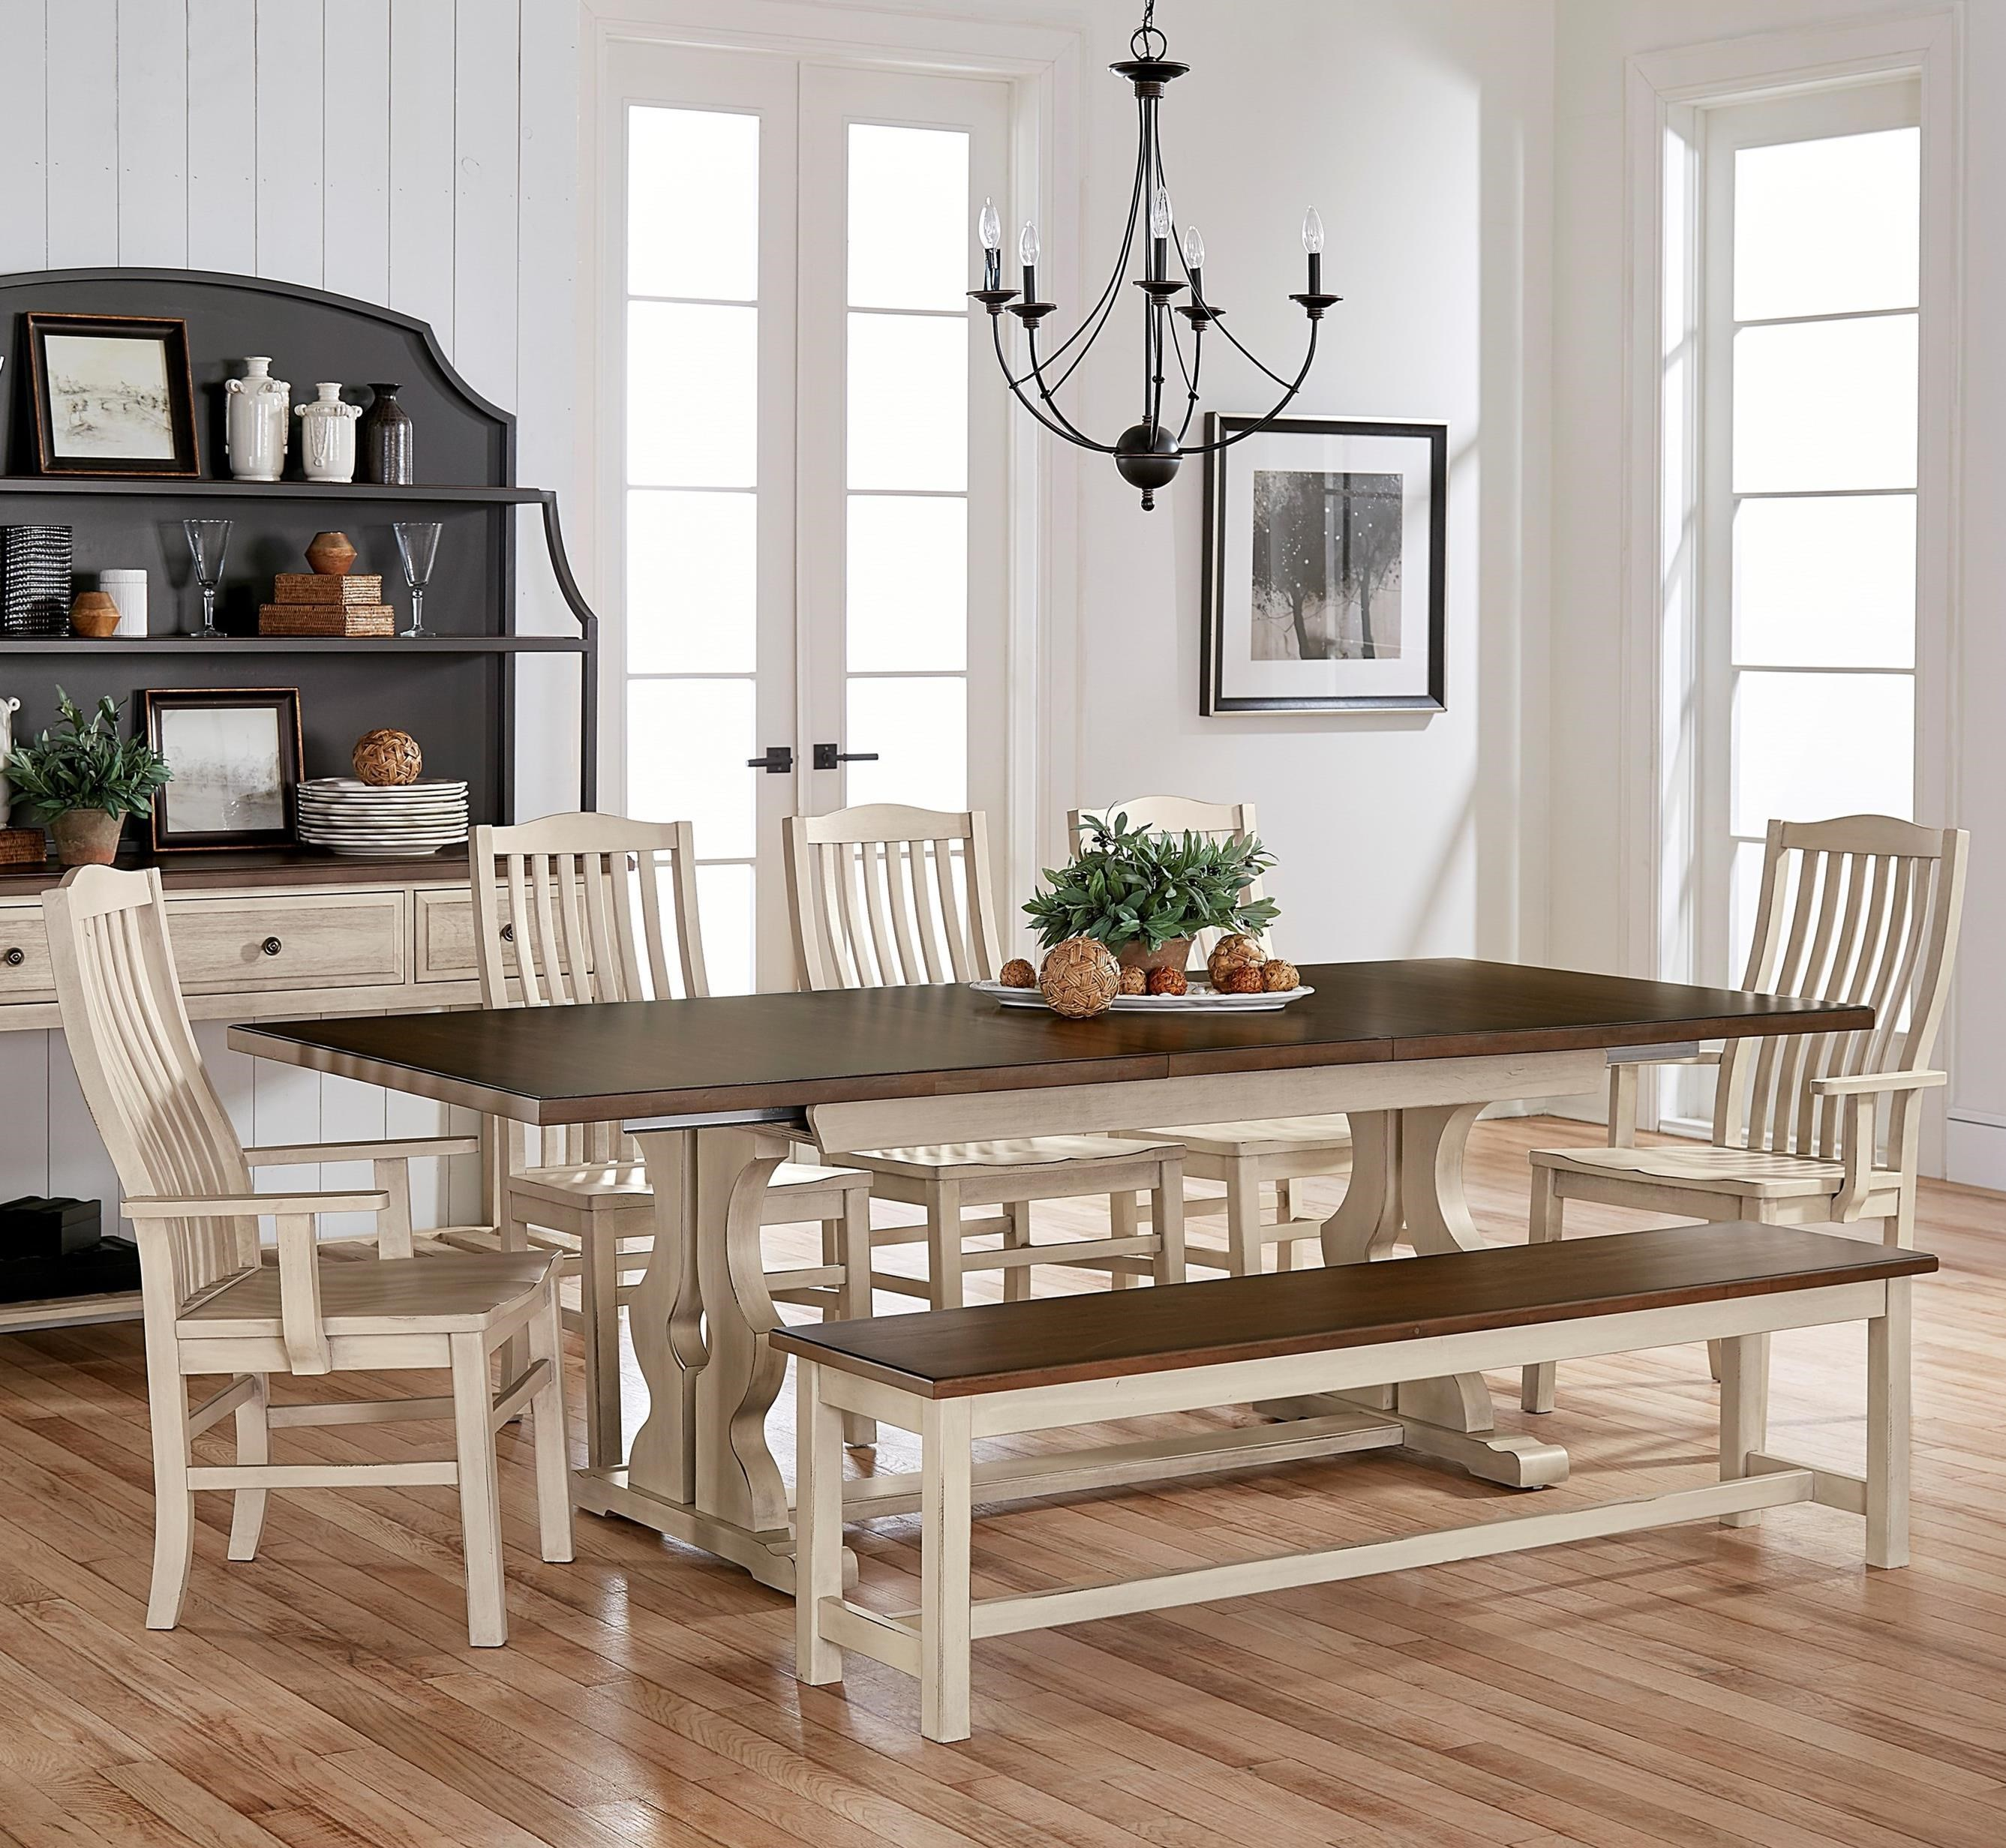 Artisan U0026 Post Simply Dining 7 Piece Solid Cherry Table Set With Bench    John V Schultz Furniture   Table U0026 Chair Set With Bench